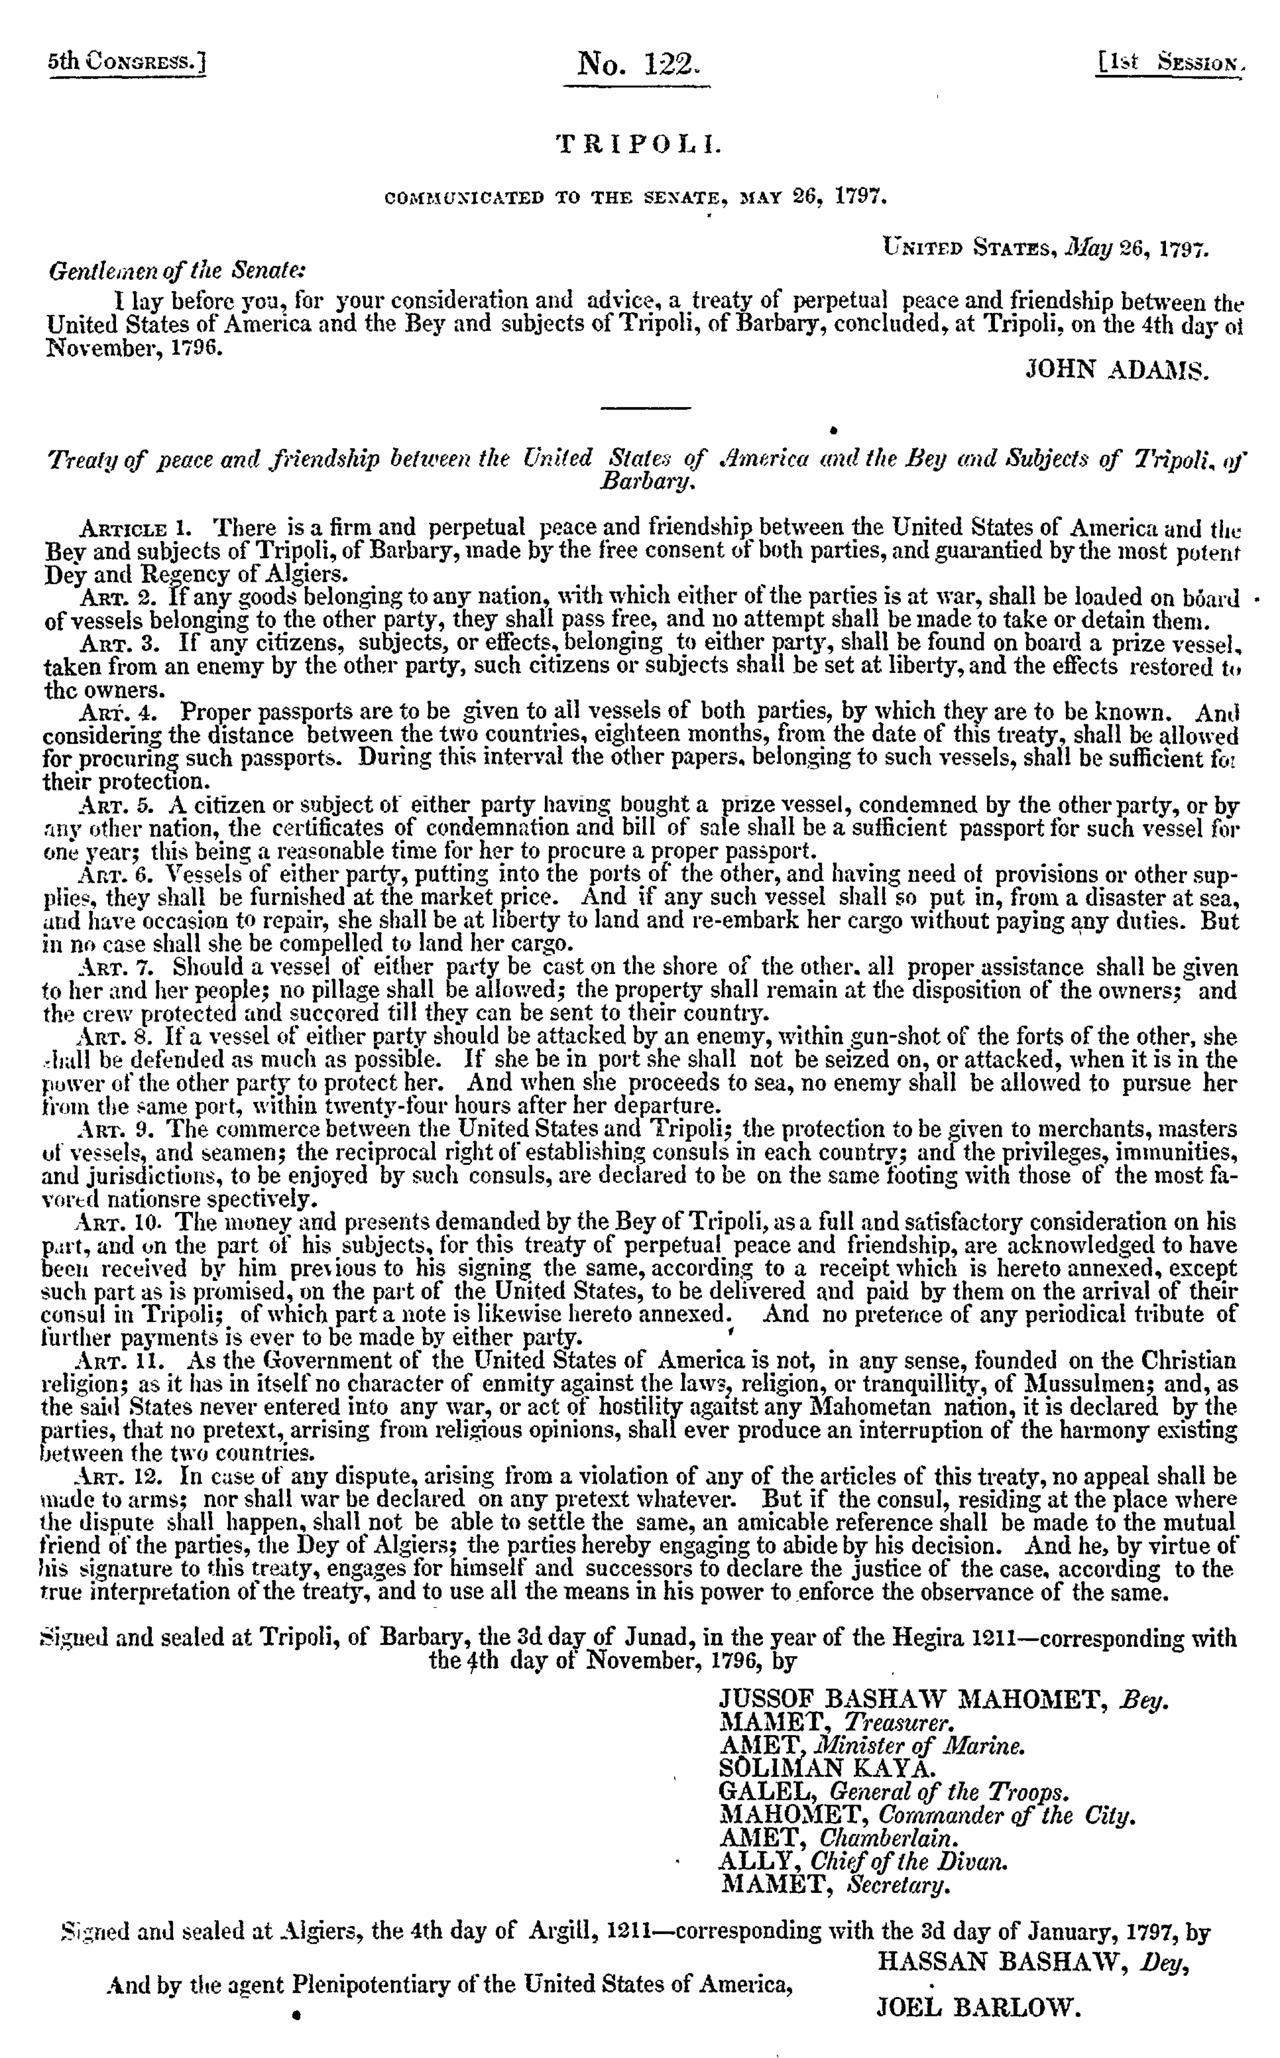 Treaty of Tripoli as communicated to Congress 1797